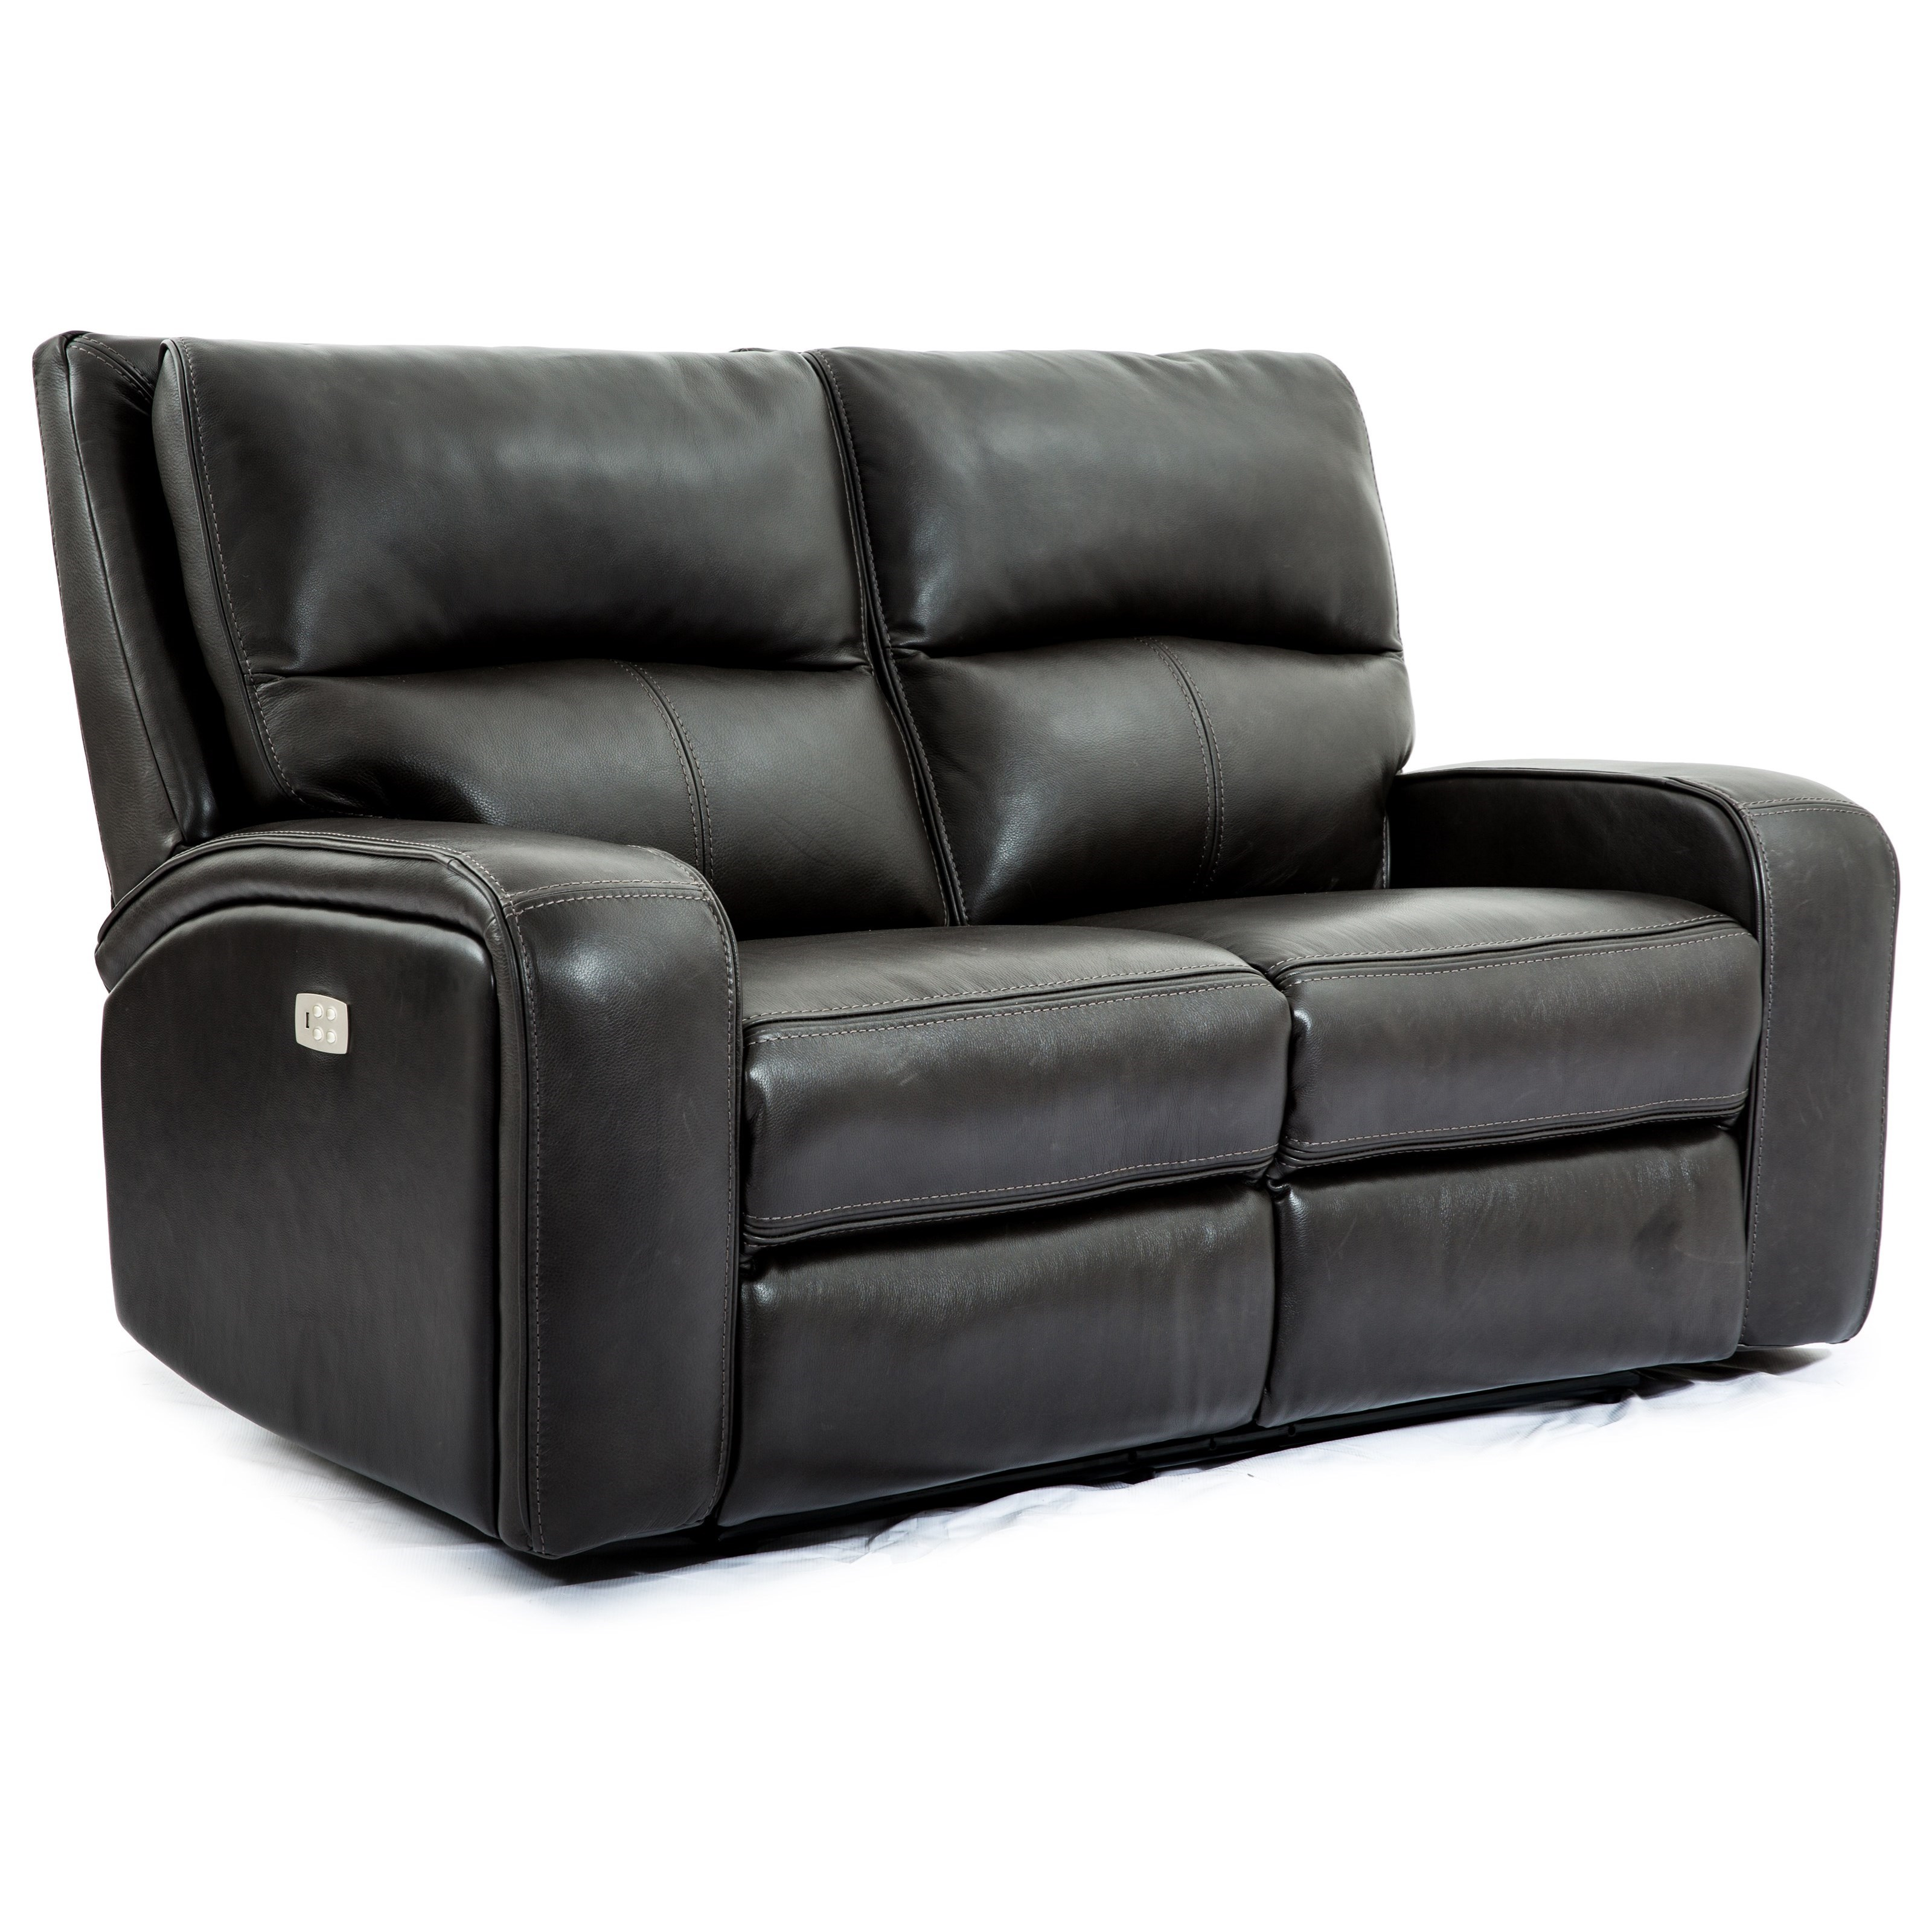 5168HM Power Reclining Loveseat by Alex Express at Northeast Factory Direct